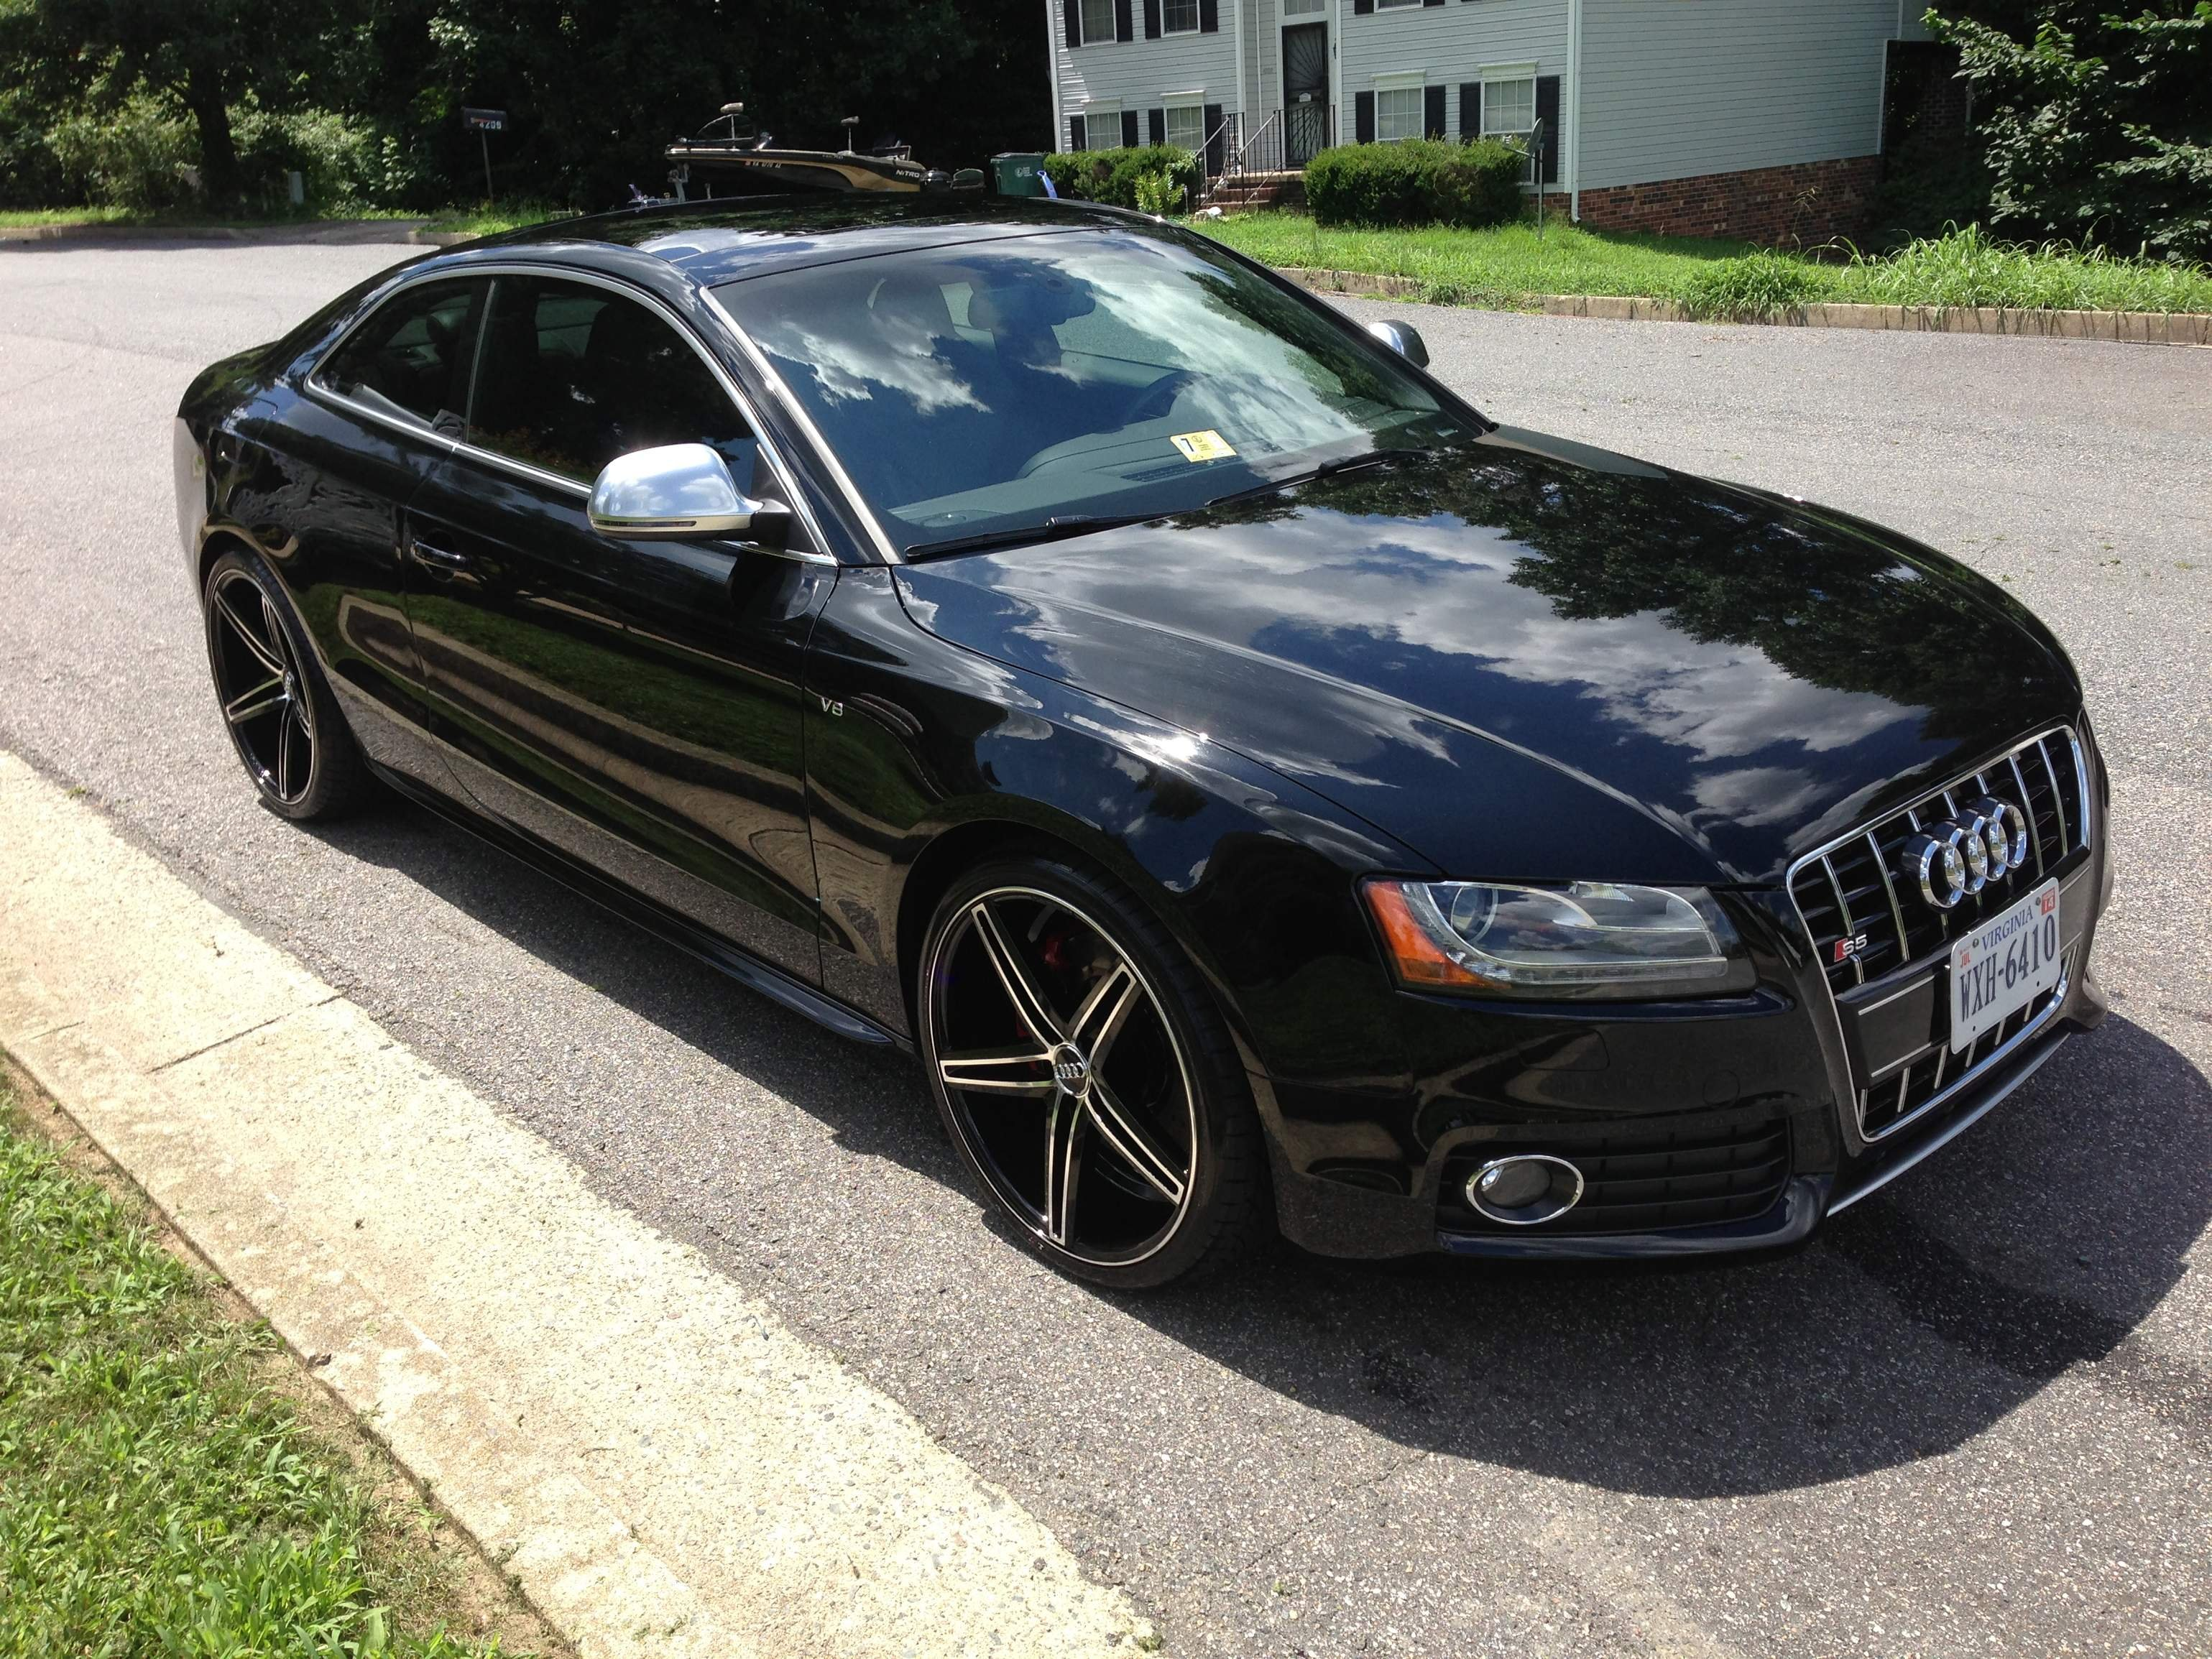 coupe version views audi forums my wrapped attachment westchester name for audiworld cabrio sportsback car click image larger size